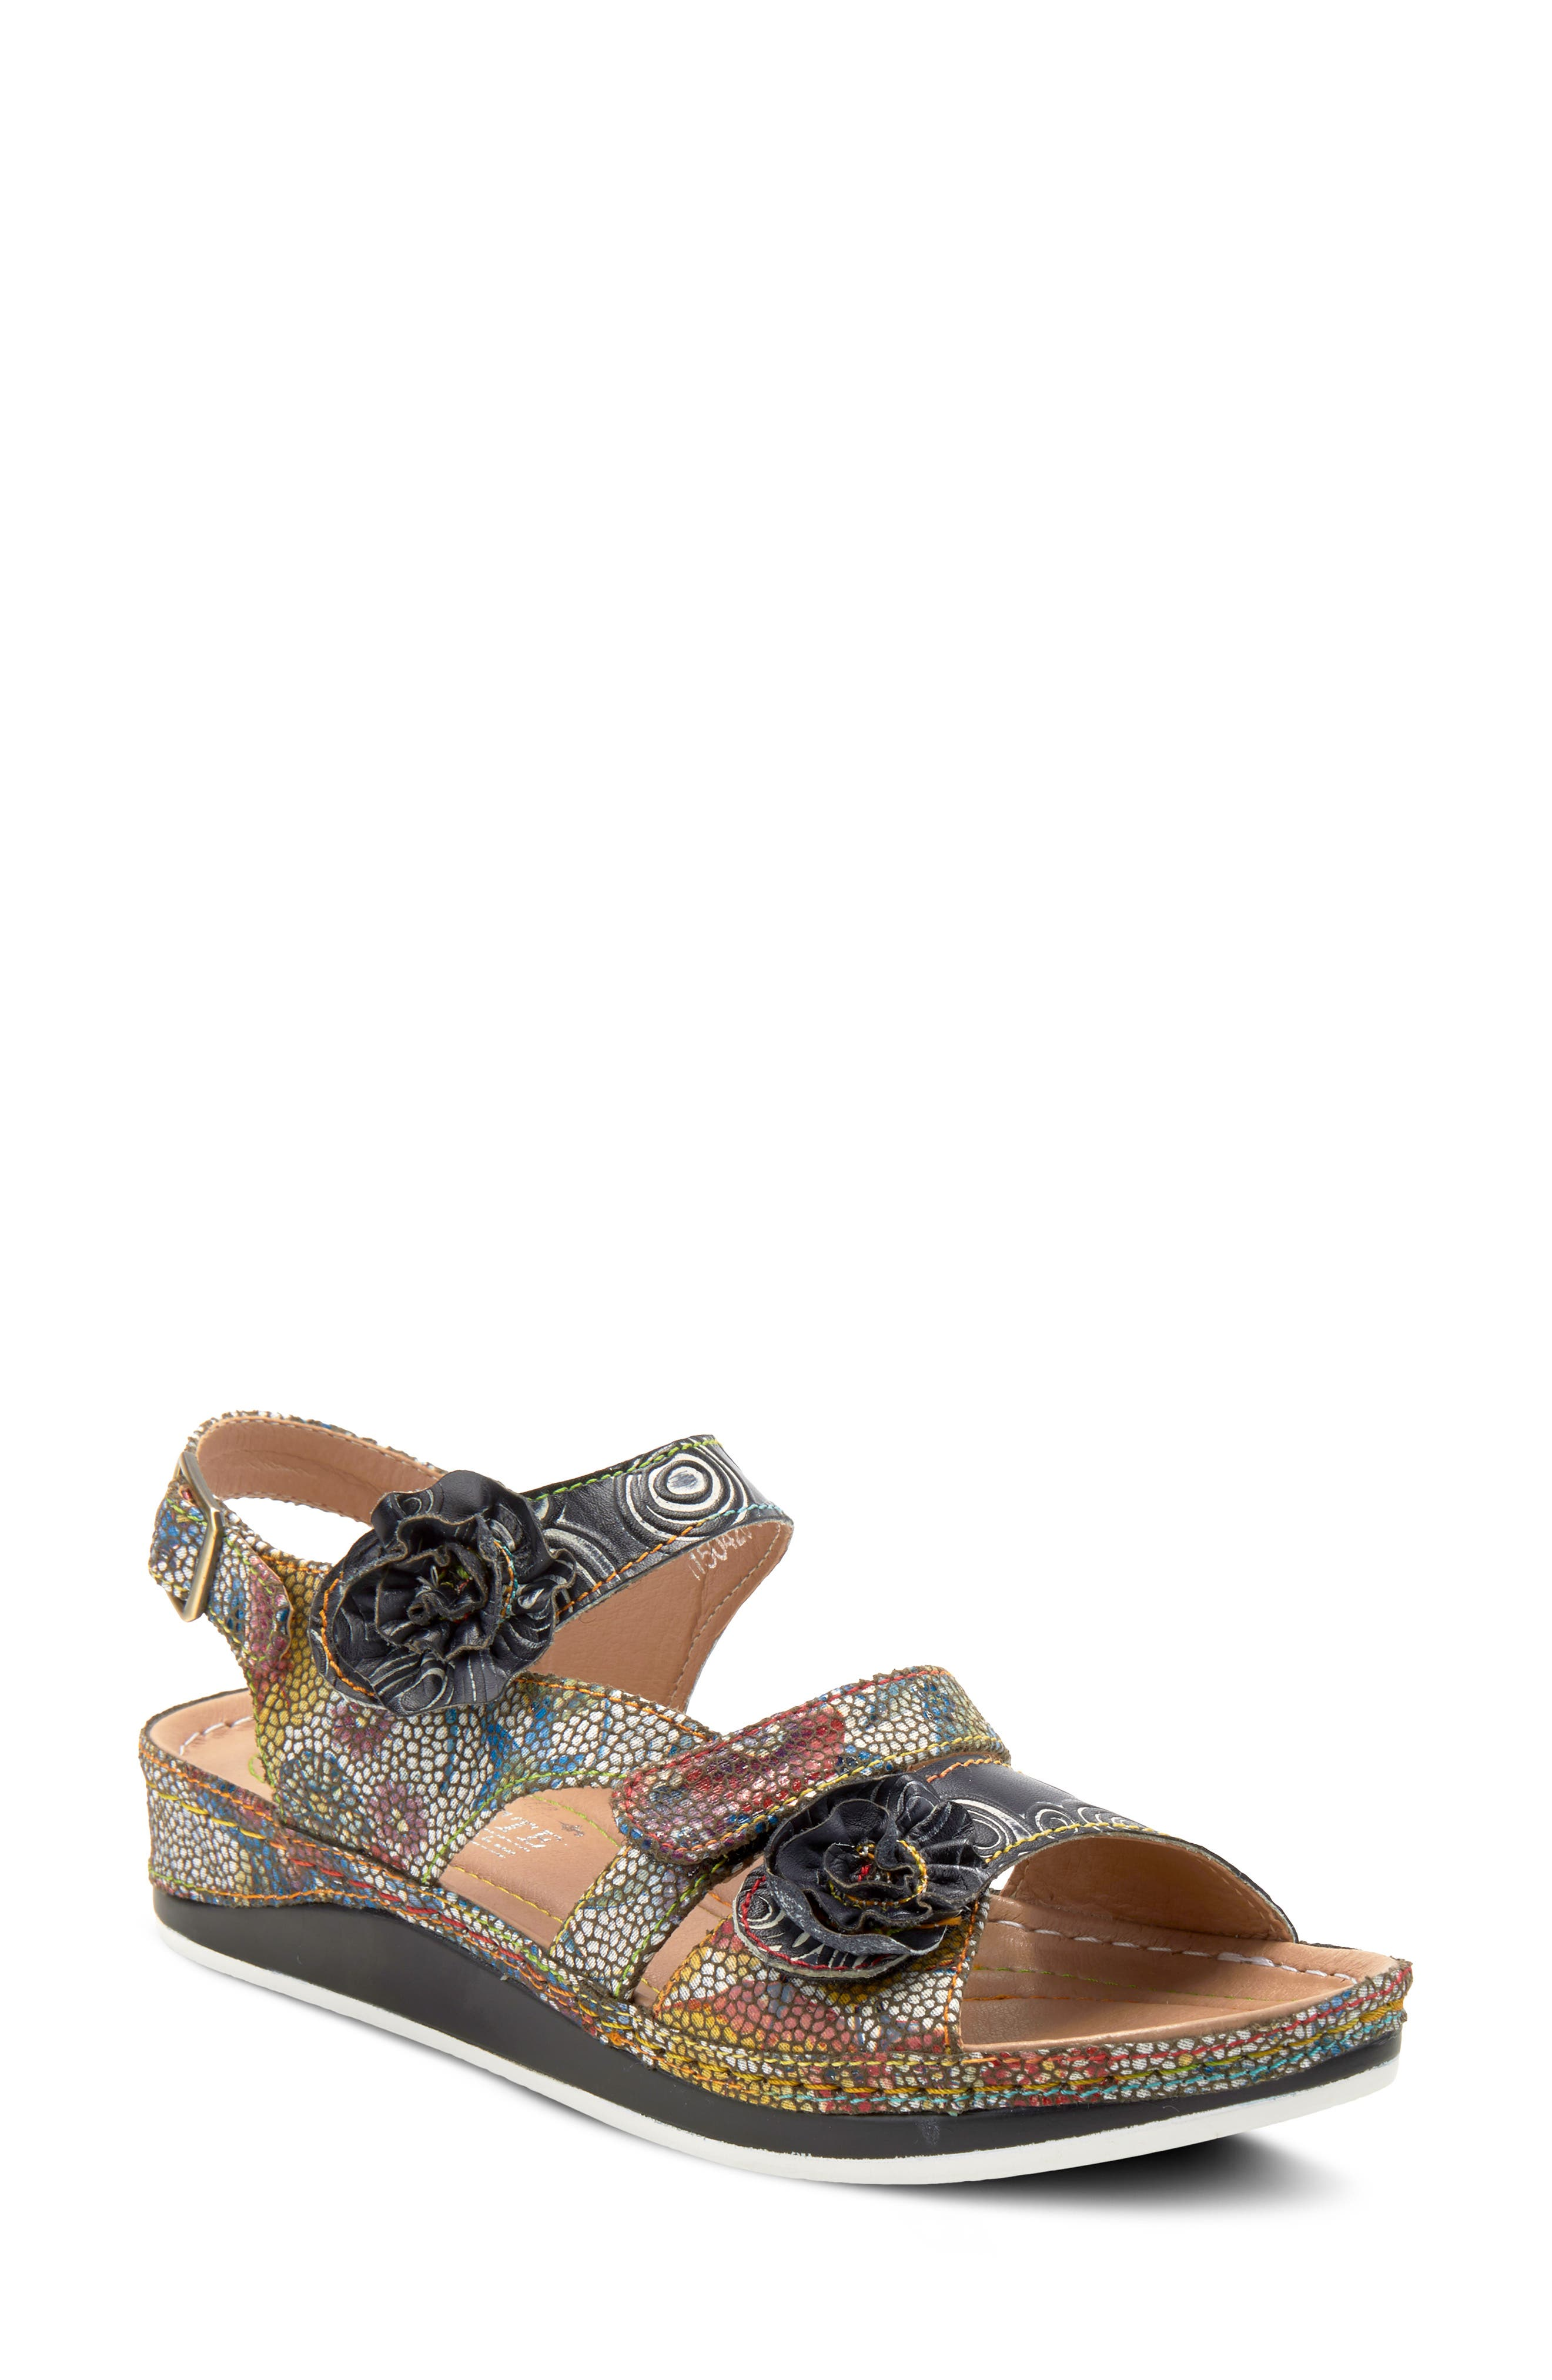 Dimensional blossoms beautifully complement the French-inspired floral mosiac design detailing the straps of a wedge sandal fitted with a cushioned footbed. Style Name:L\\\'Artiste Joelina Sandal (Women). Style Number: 5980704. Available in stores.